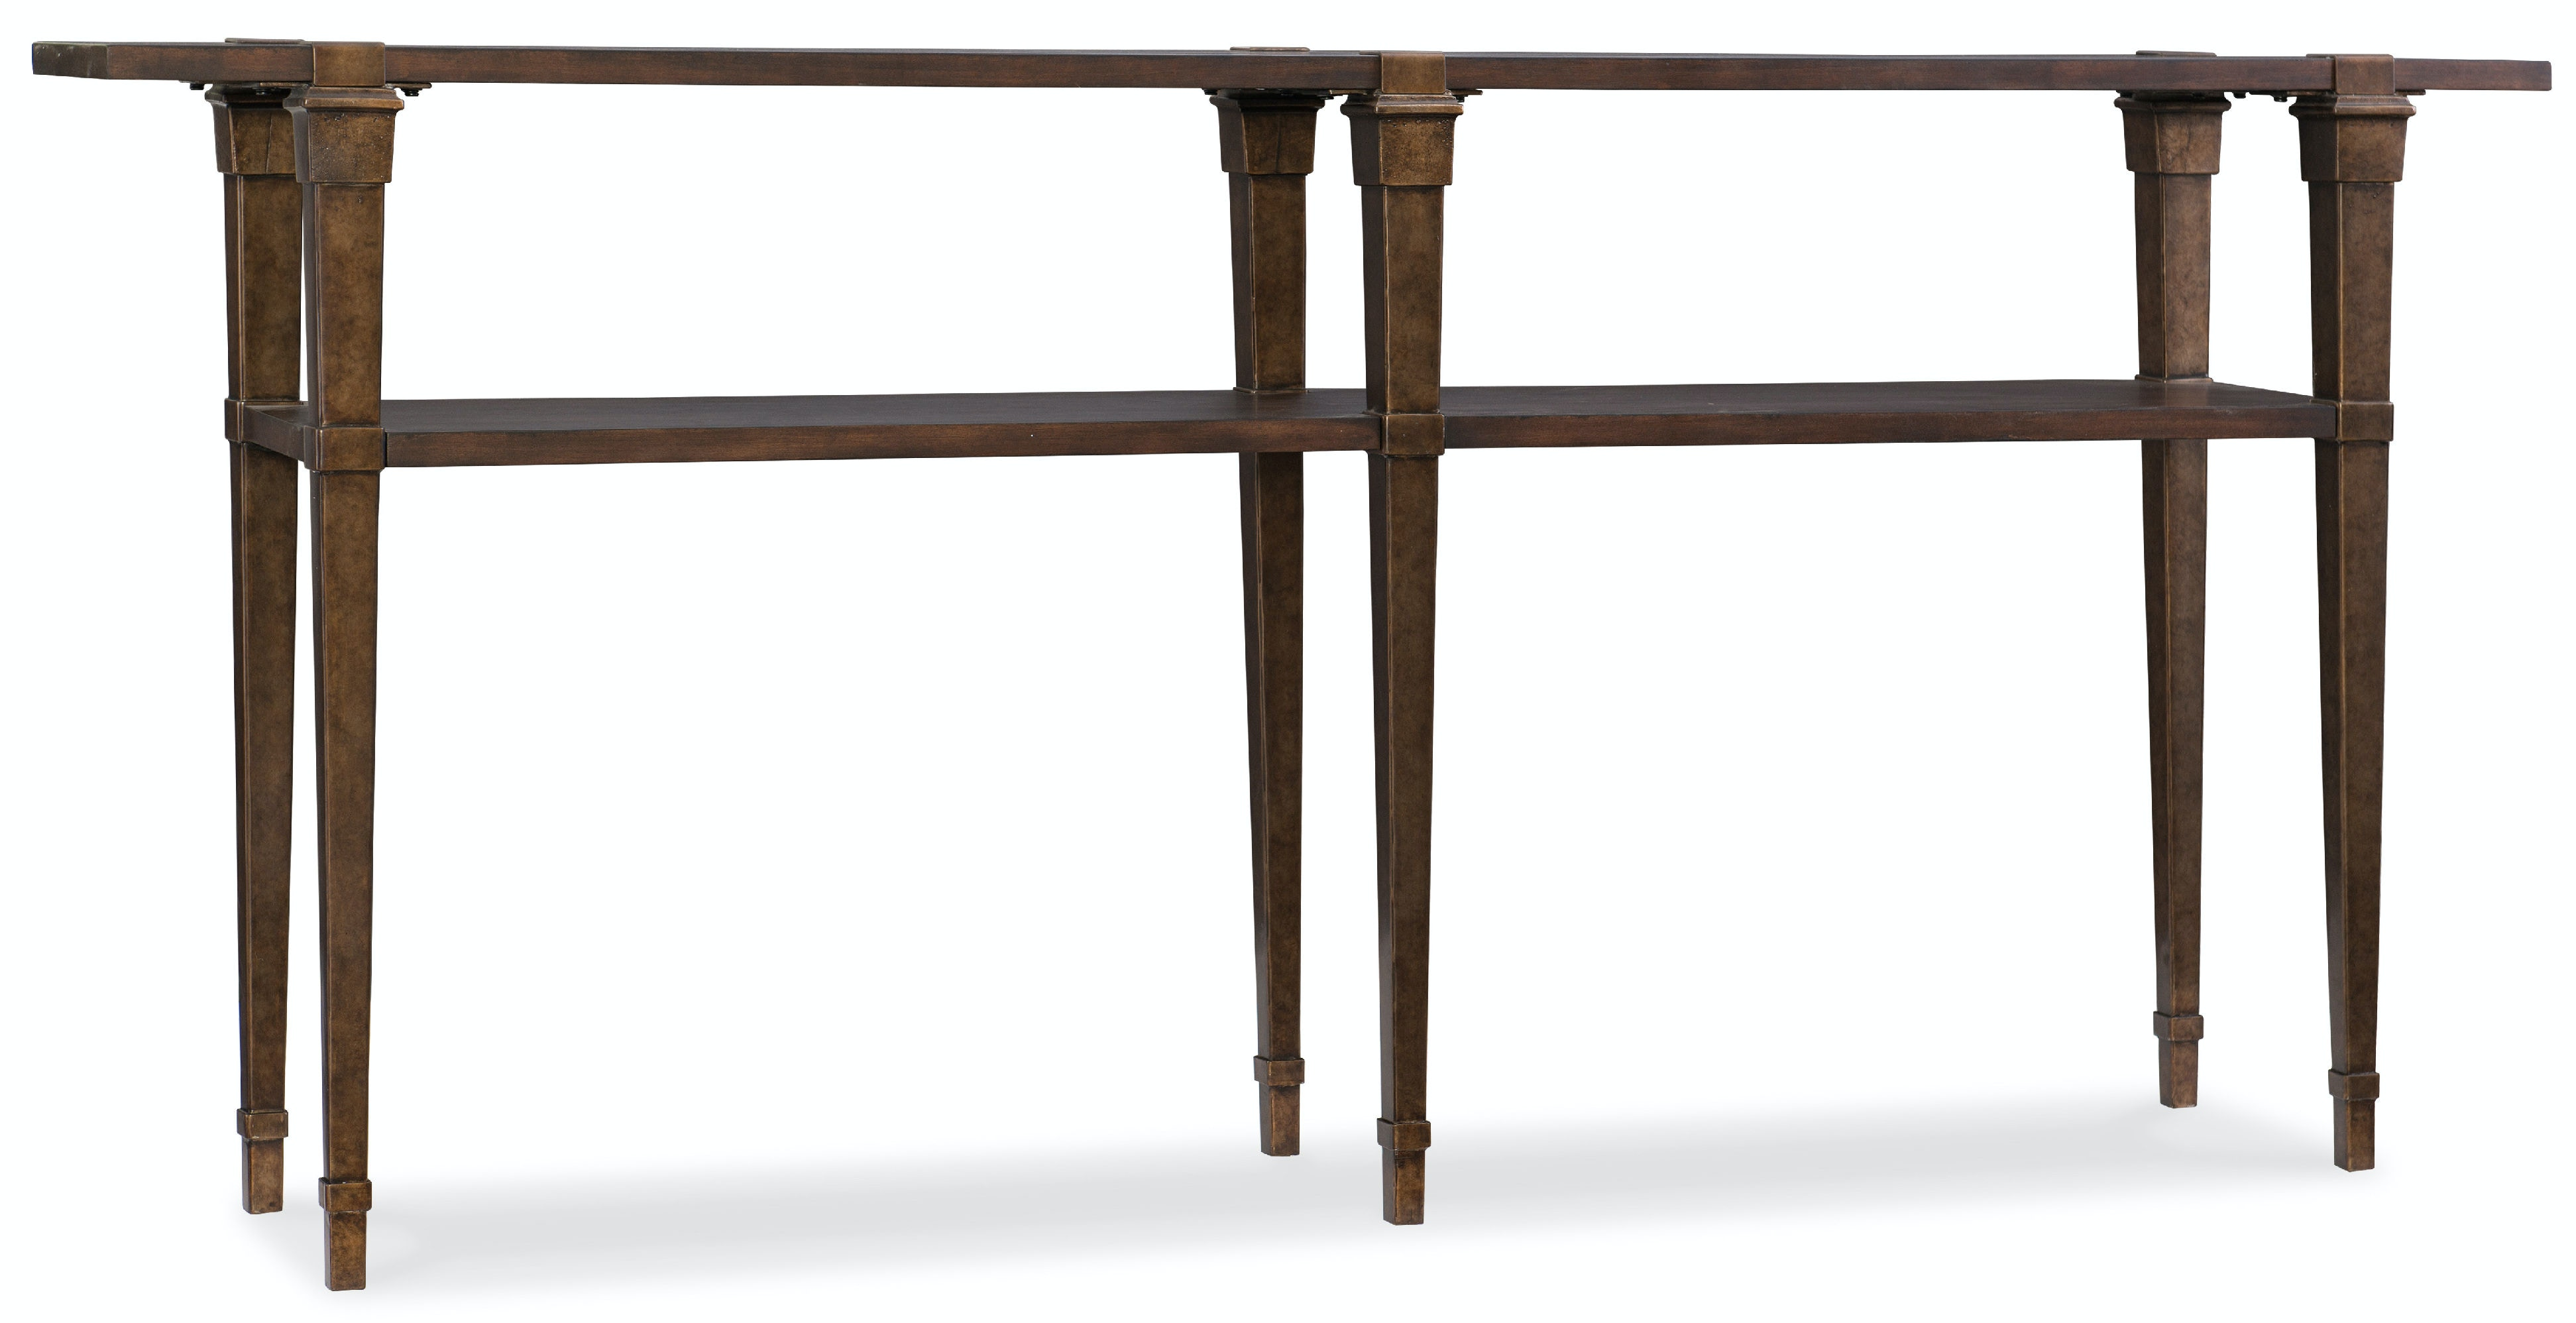 Hooker Furniture Skinny Console Table 5589 85001 DKW